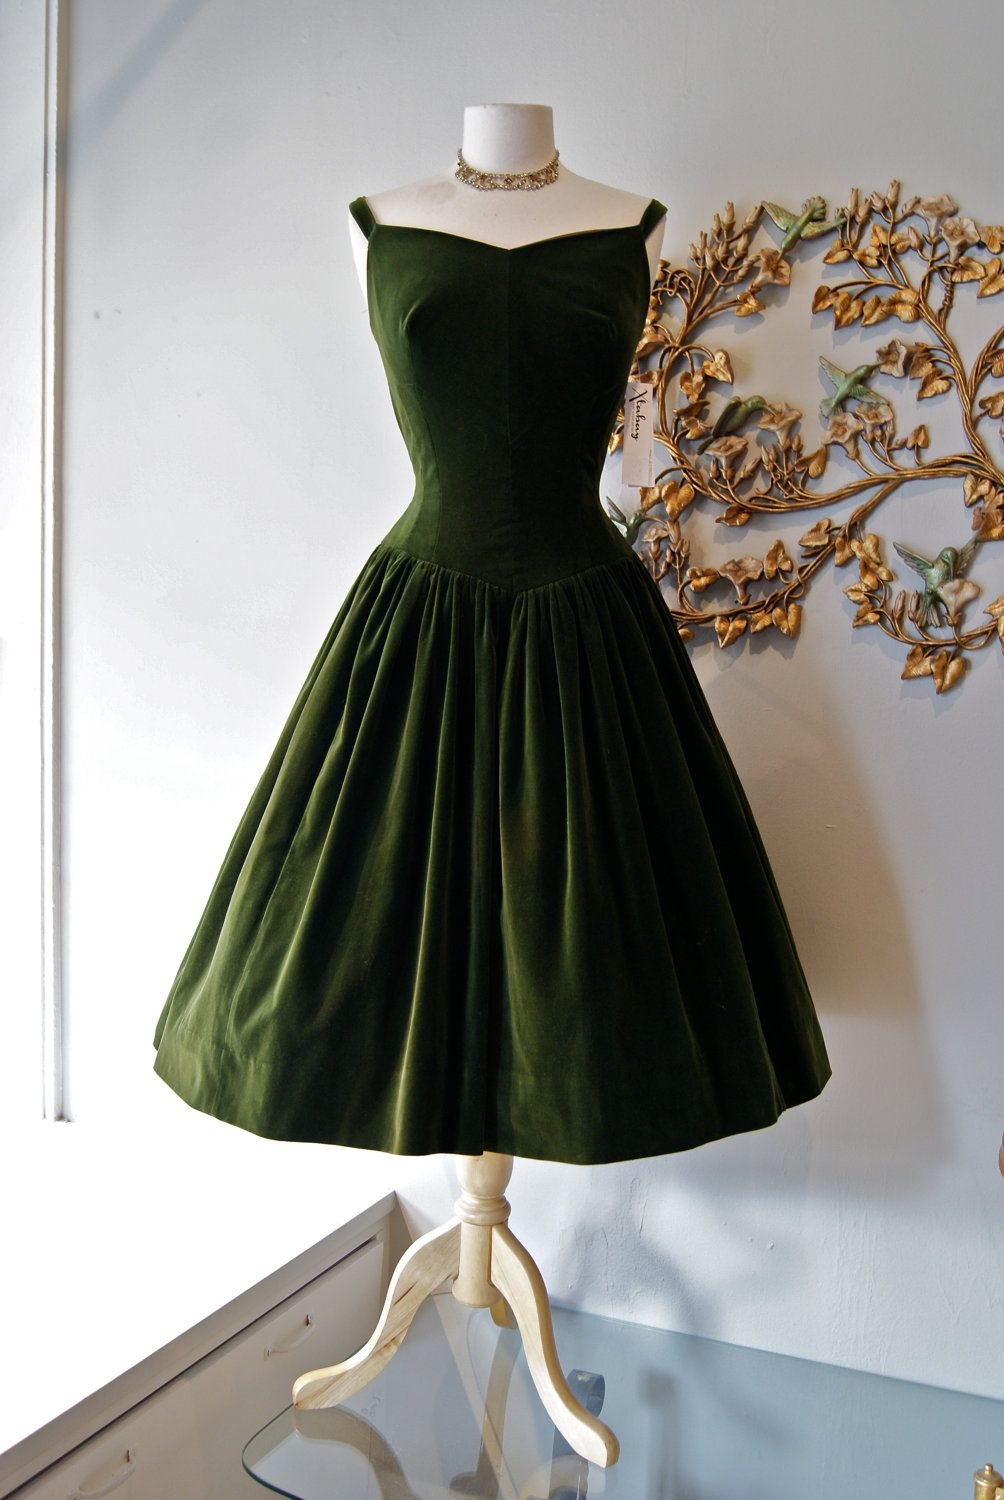 50s Dress 1950s Party Dress Vintage 1950s Couture Olive Etsy 1950s Party Dresses Vintage Dresses Dresses [ 1500 x 1004 Pixel ]